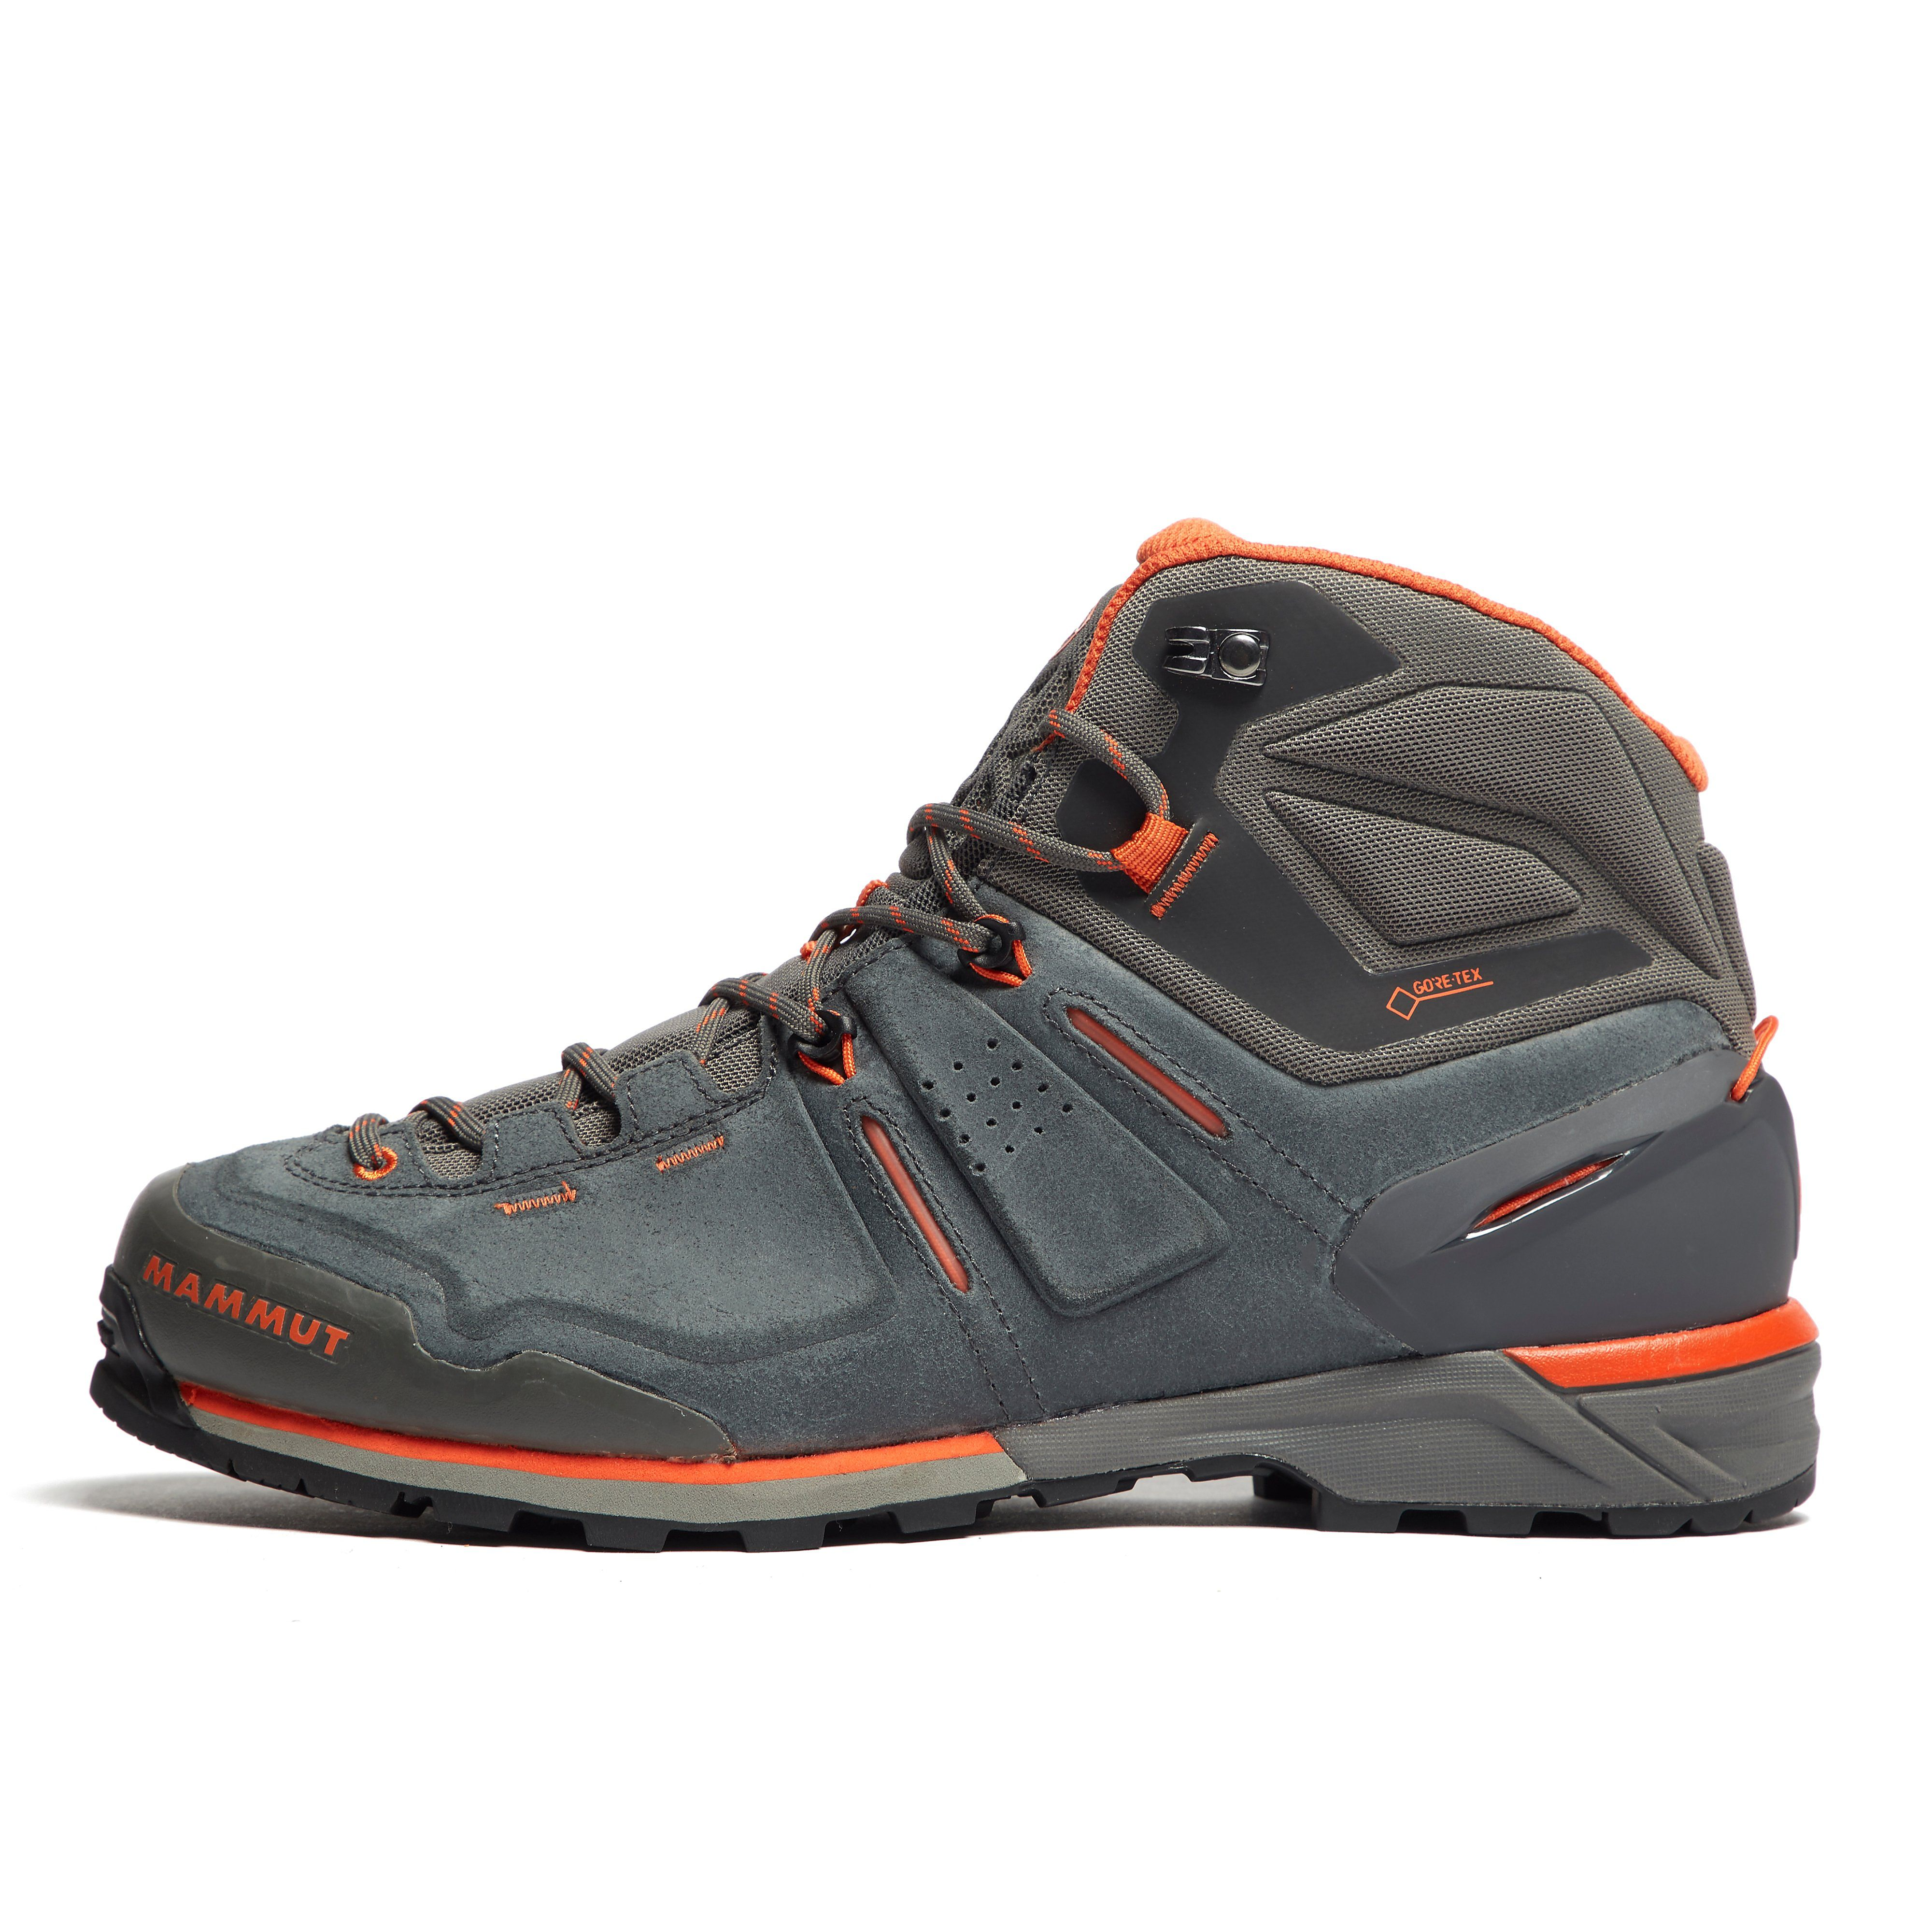 latest fashion where can i buy exclusive deals Mammut Alnasca Pro Mid GTX Men's Walking Boots | activinstinct